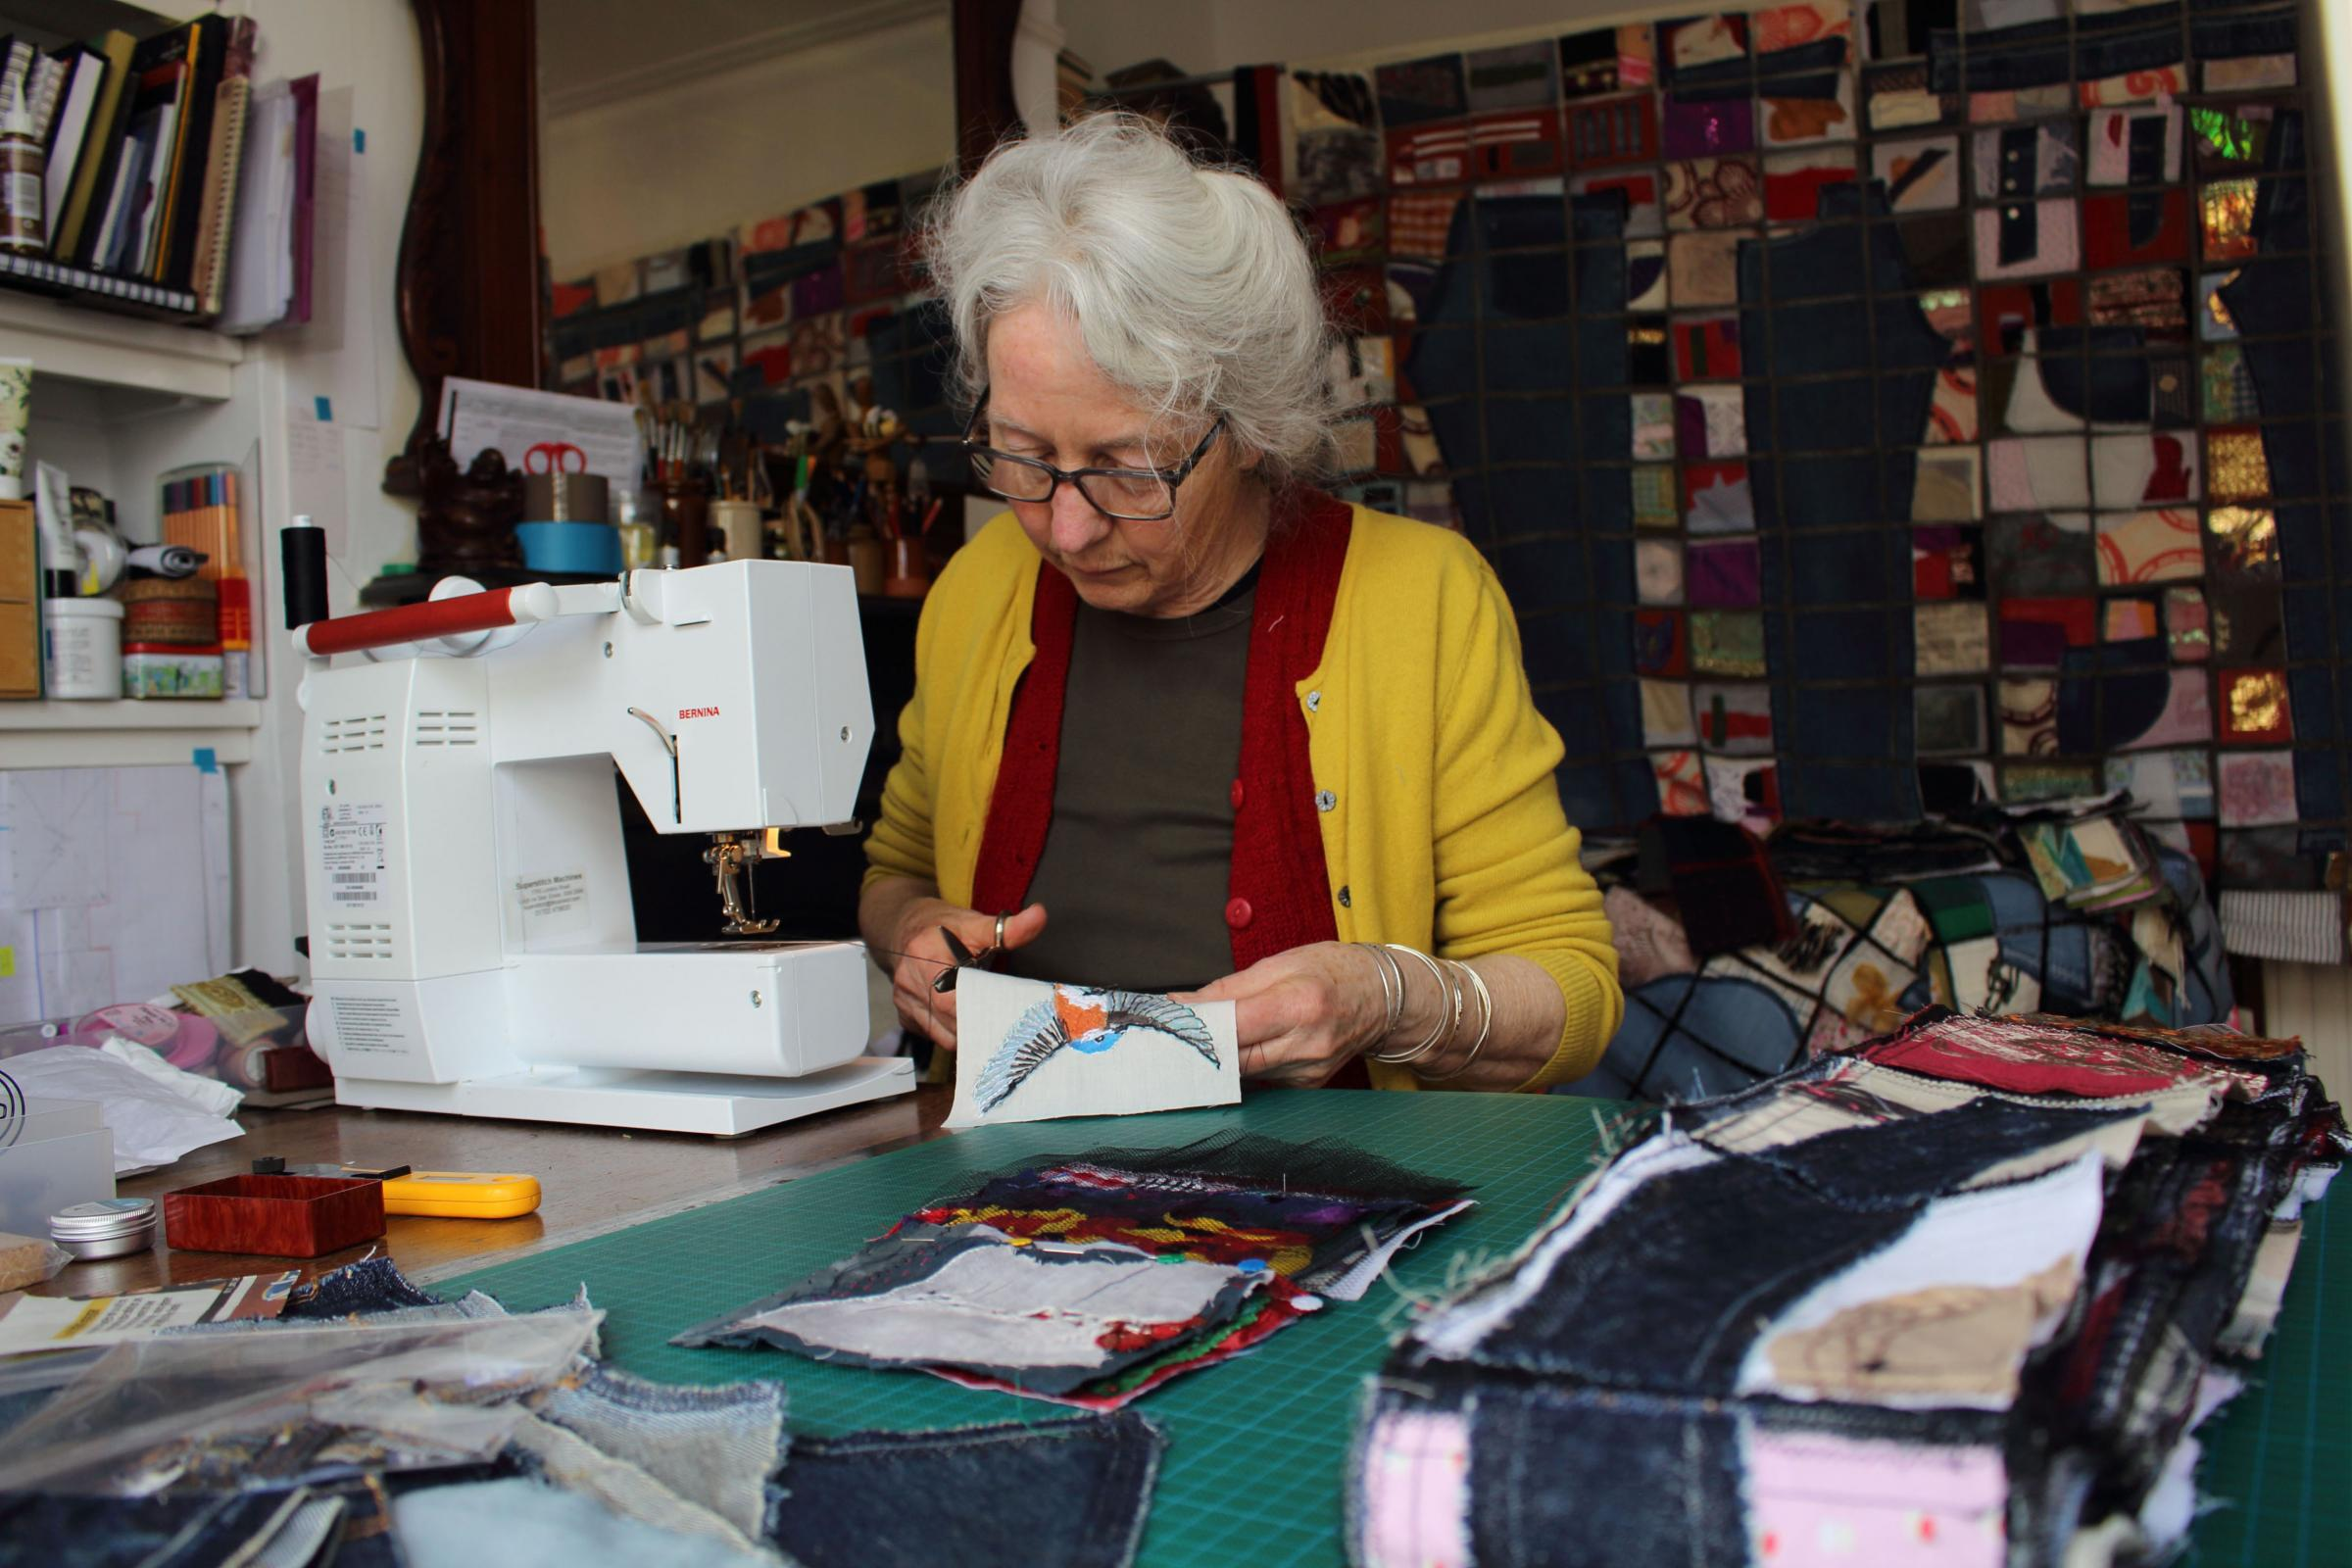 Gwen Simpson at her sewing maching - by Joe Scotland